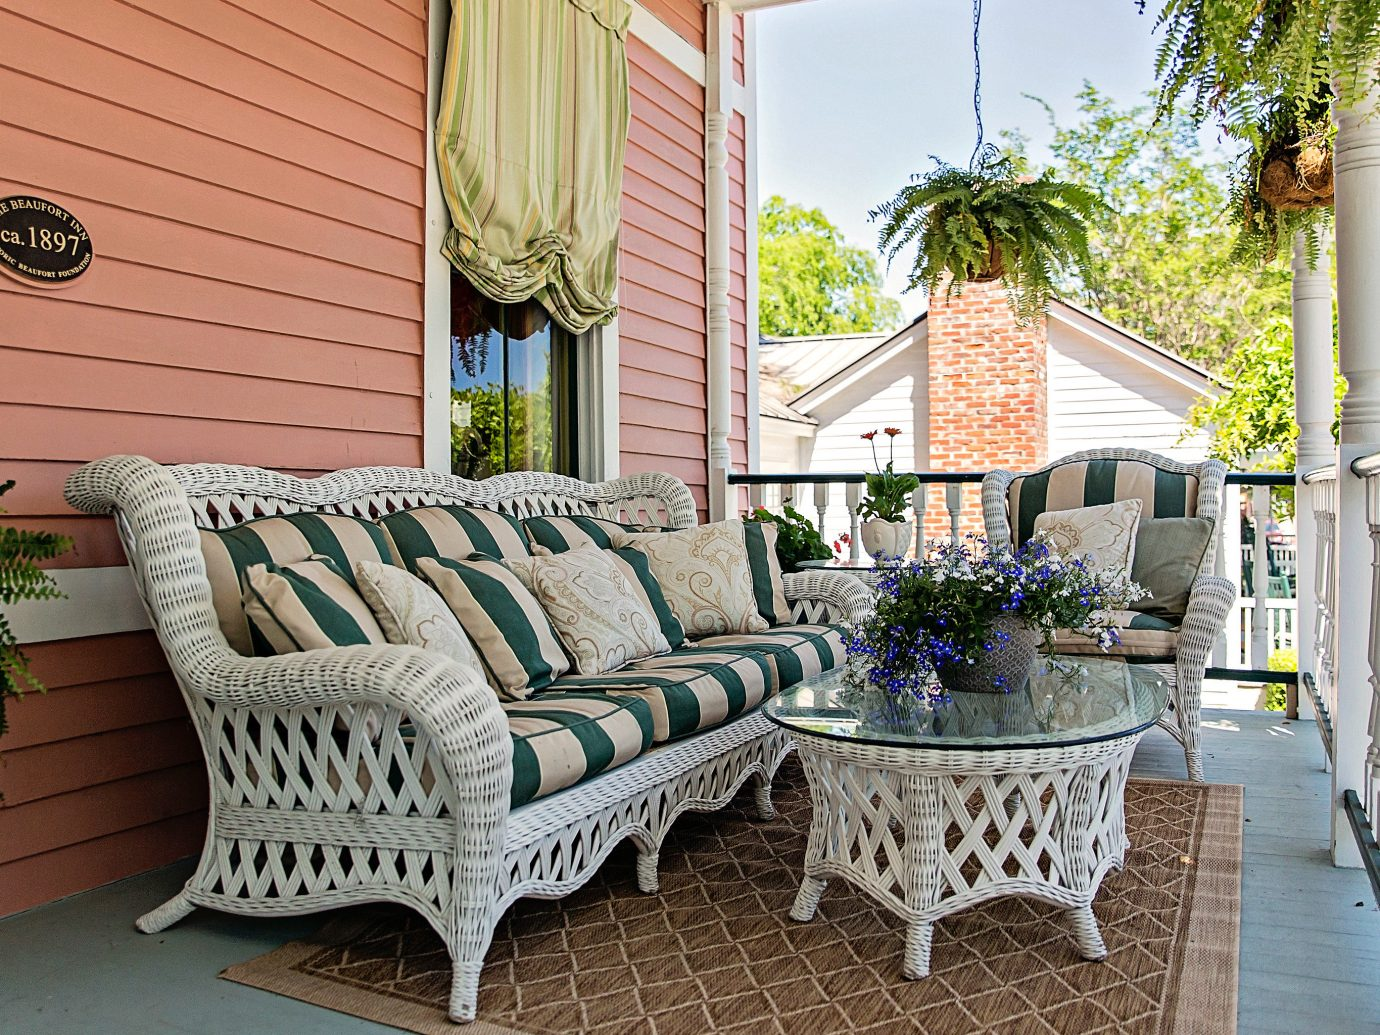 Balcony Country Deck Inn Living Lounge Trip Ideas property room porch estate home backyard outdoor structure cottage interior design real estate Villa living room Patio mansion Garden furniture stone